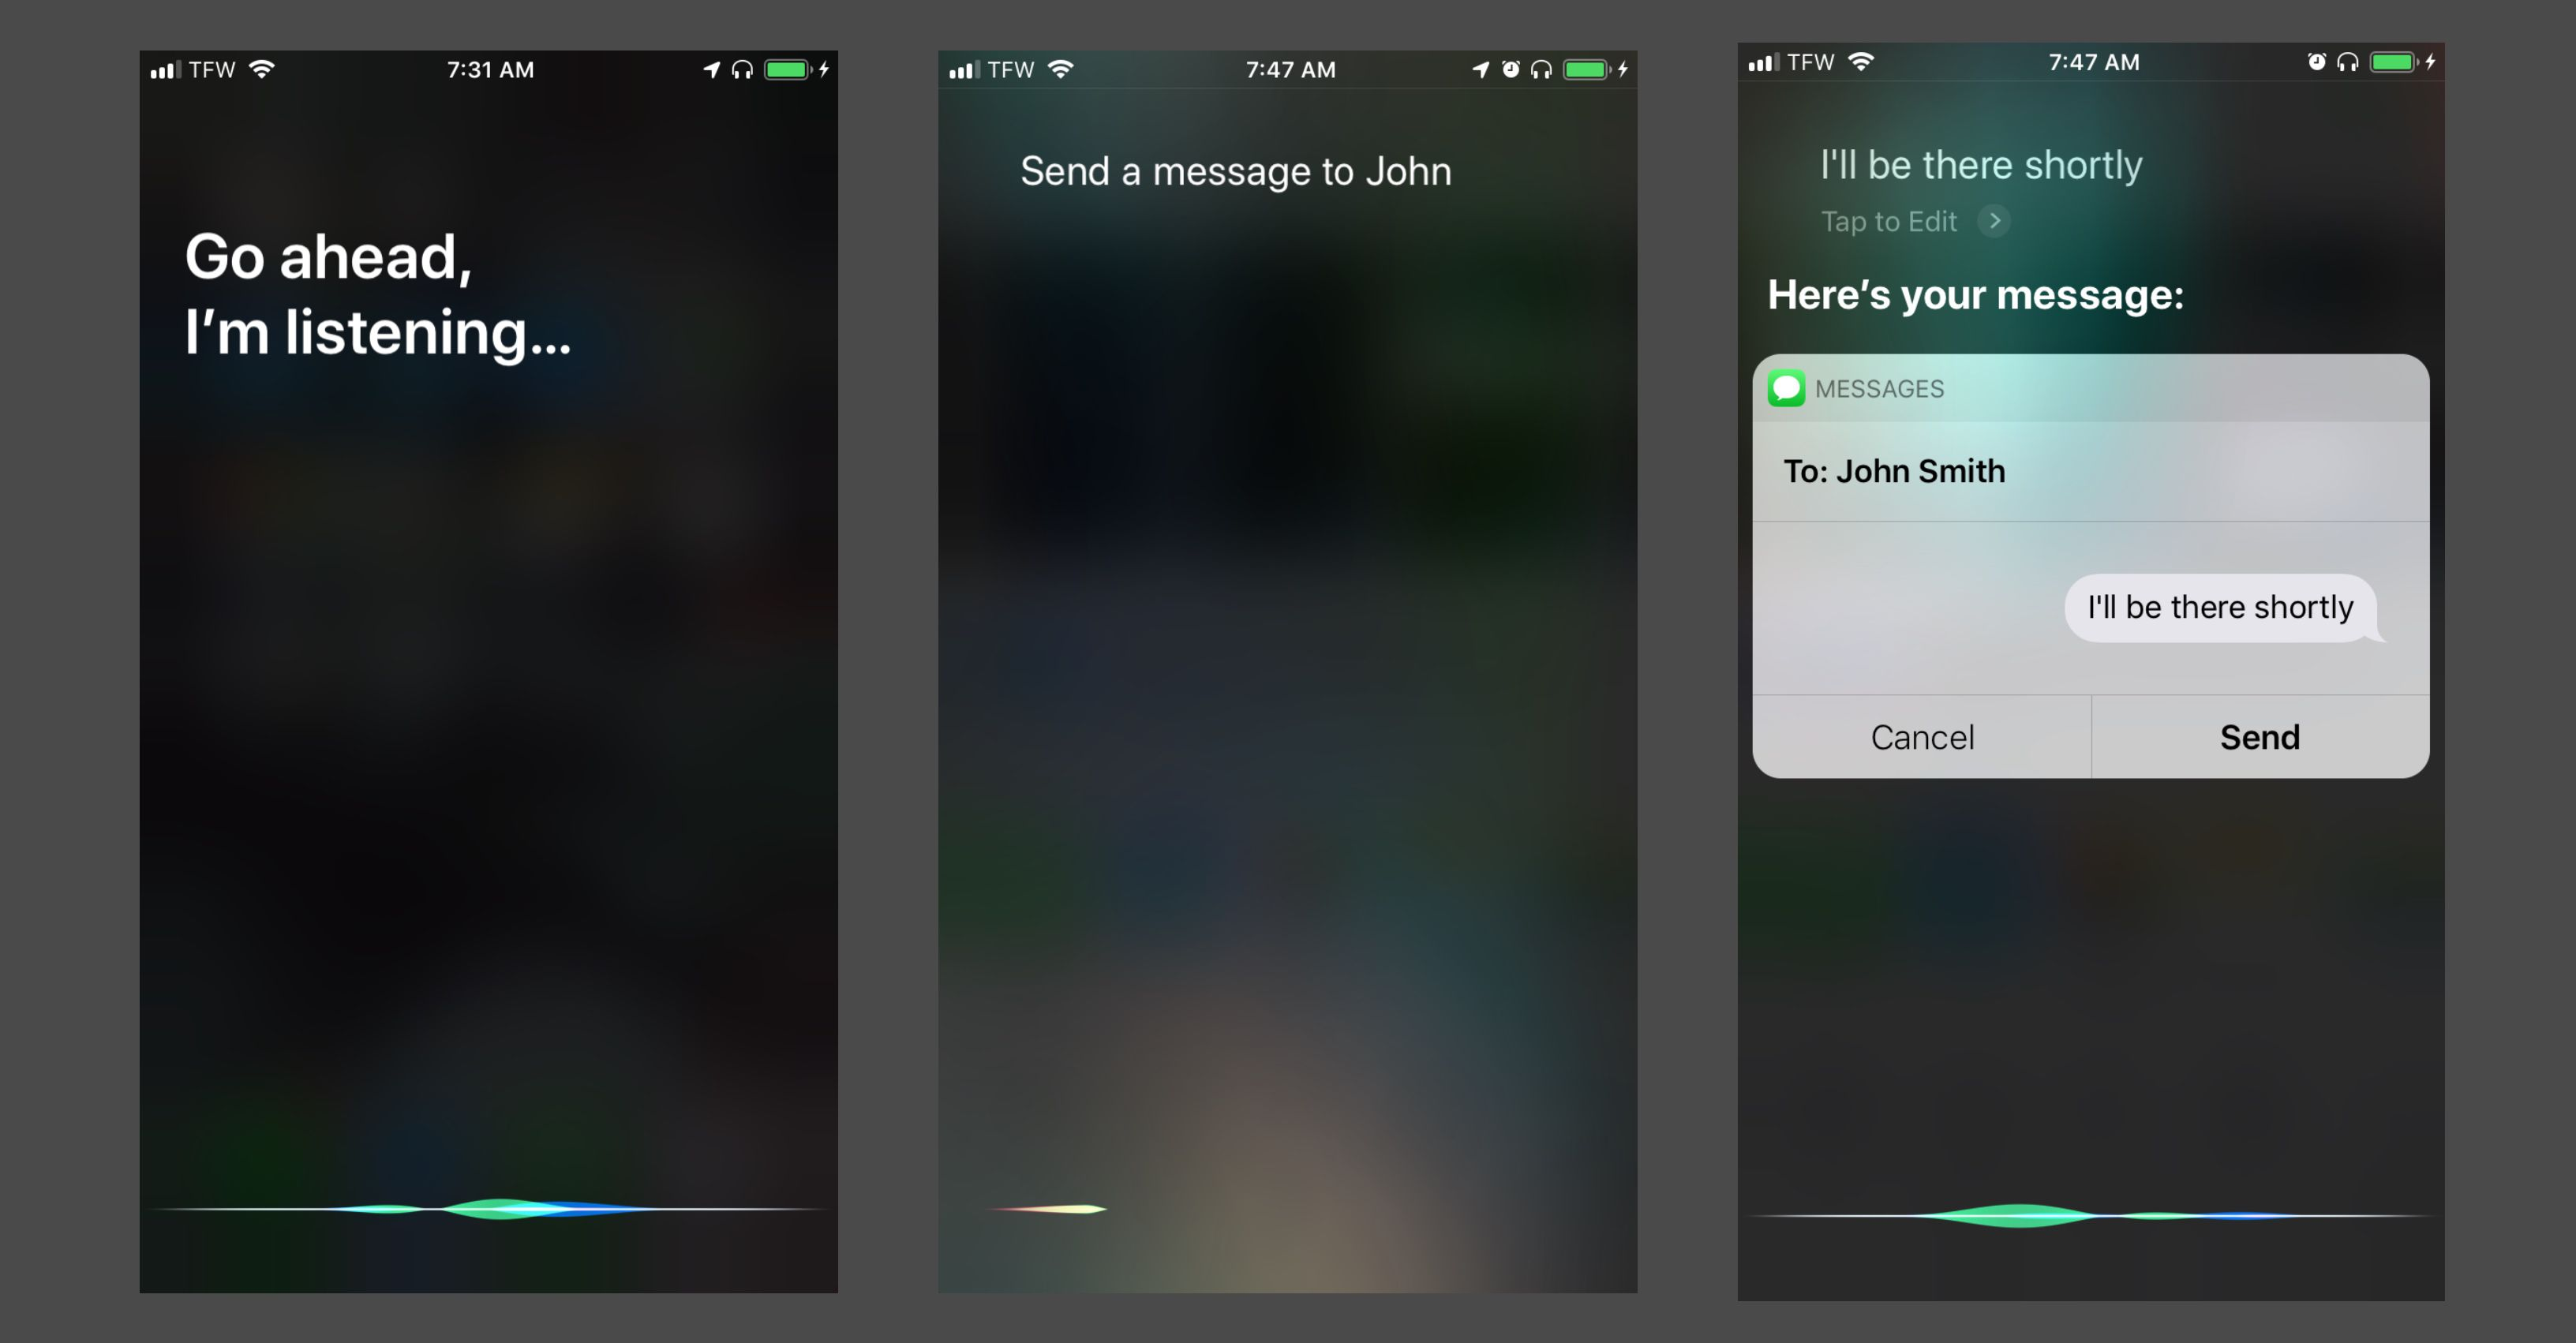 Using Siri and AirPods to send a text message